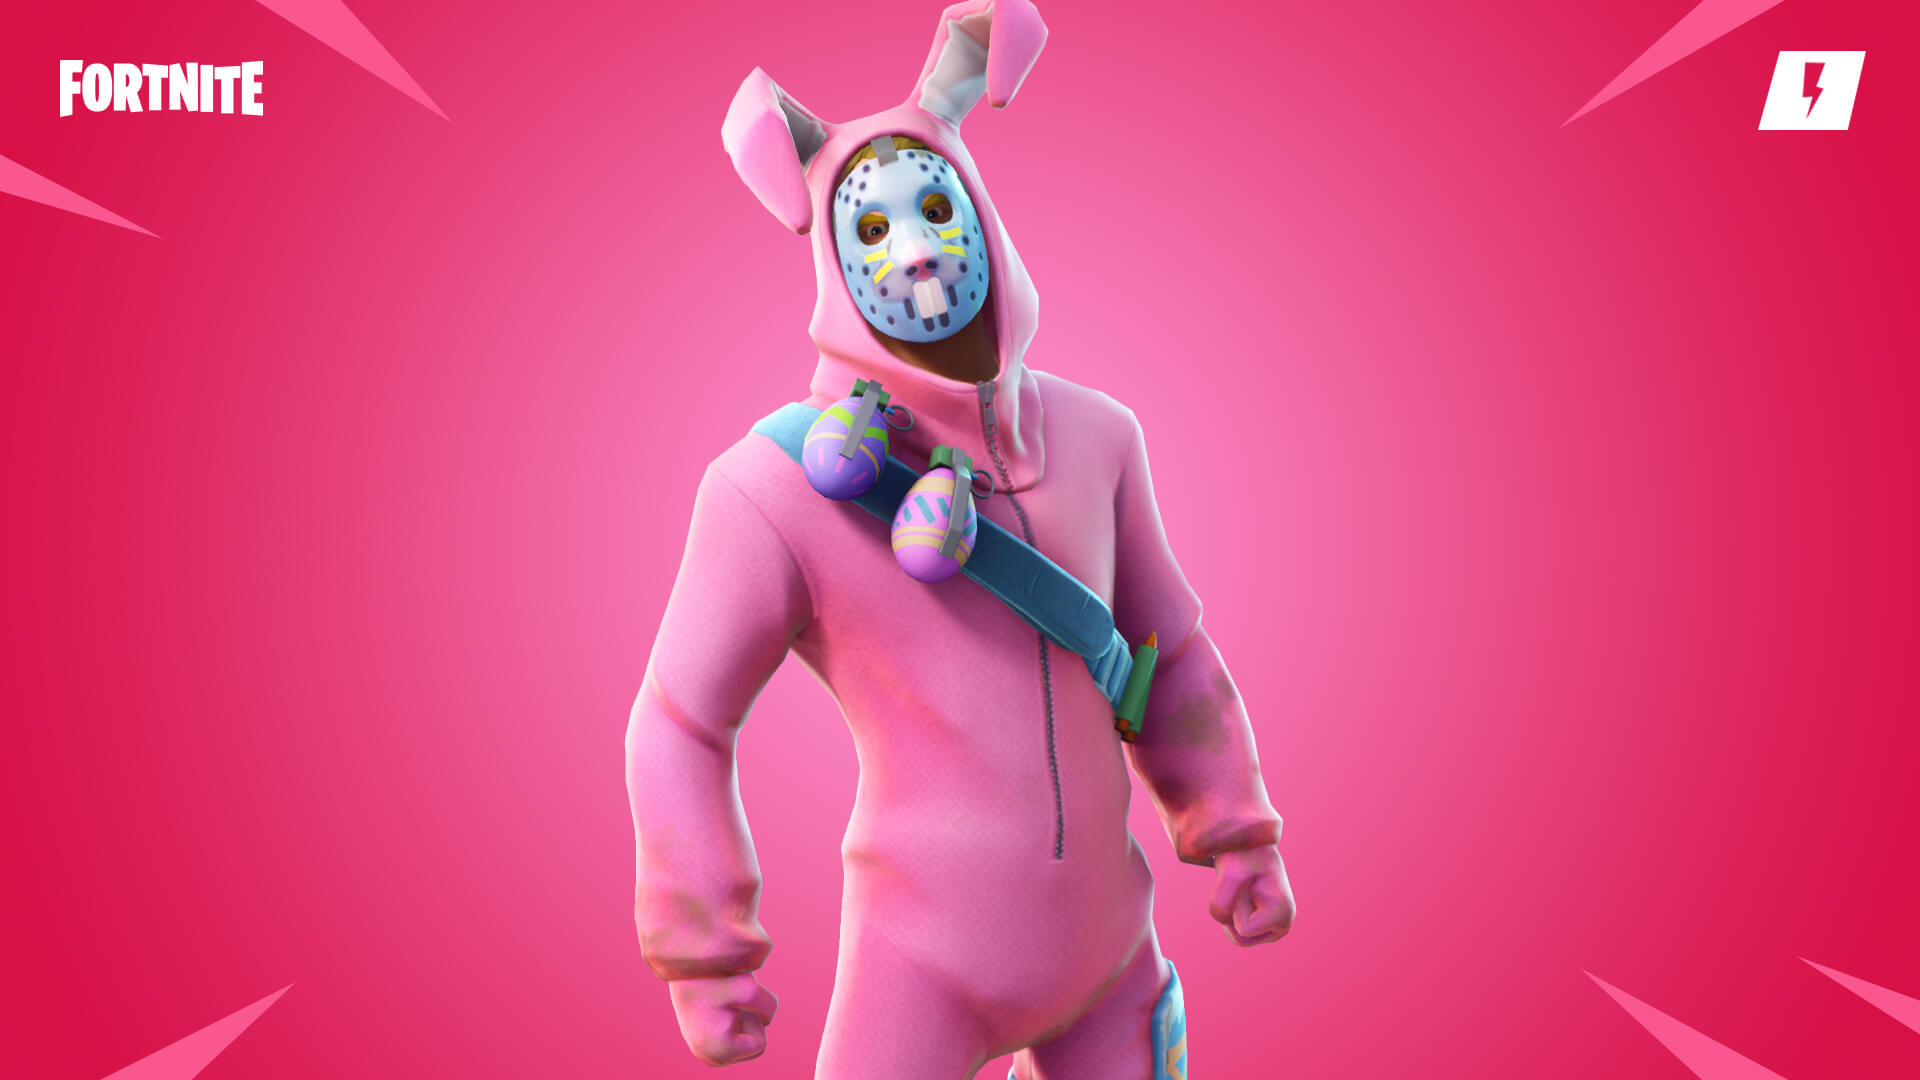 forntite-rabbit-raider-jonesy.jpg